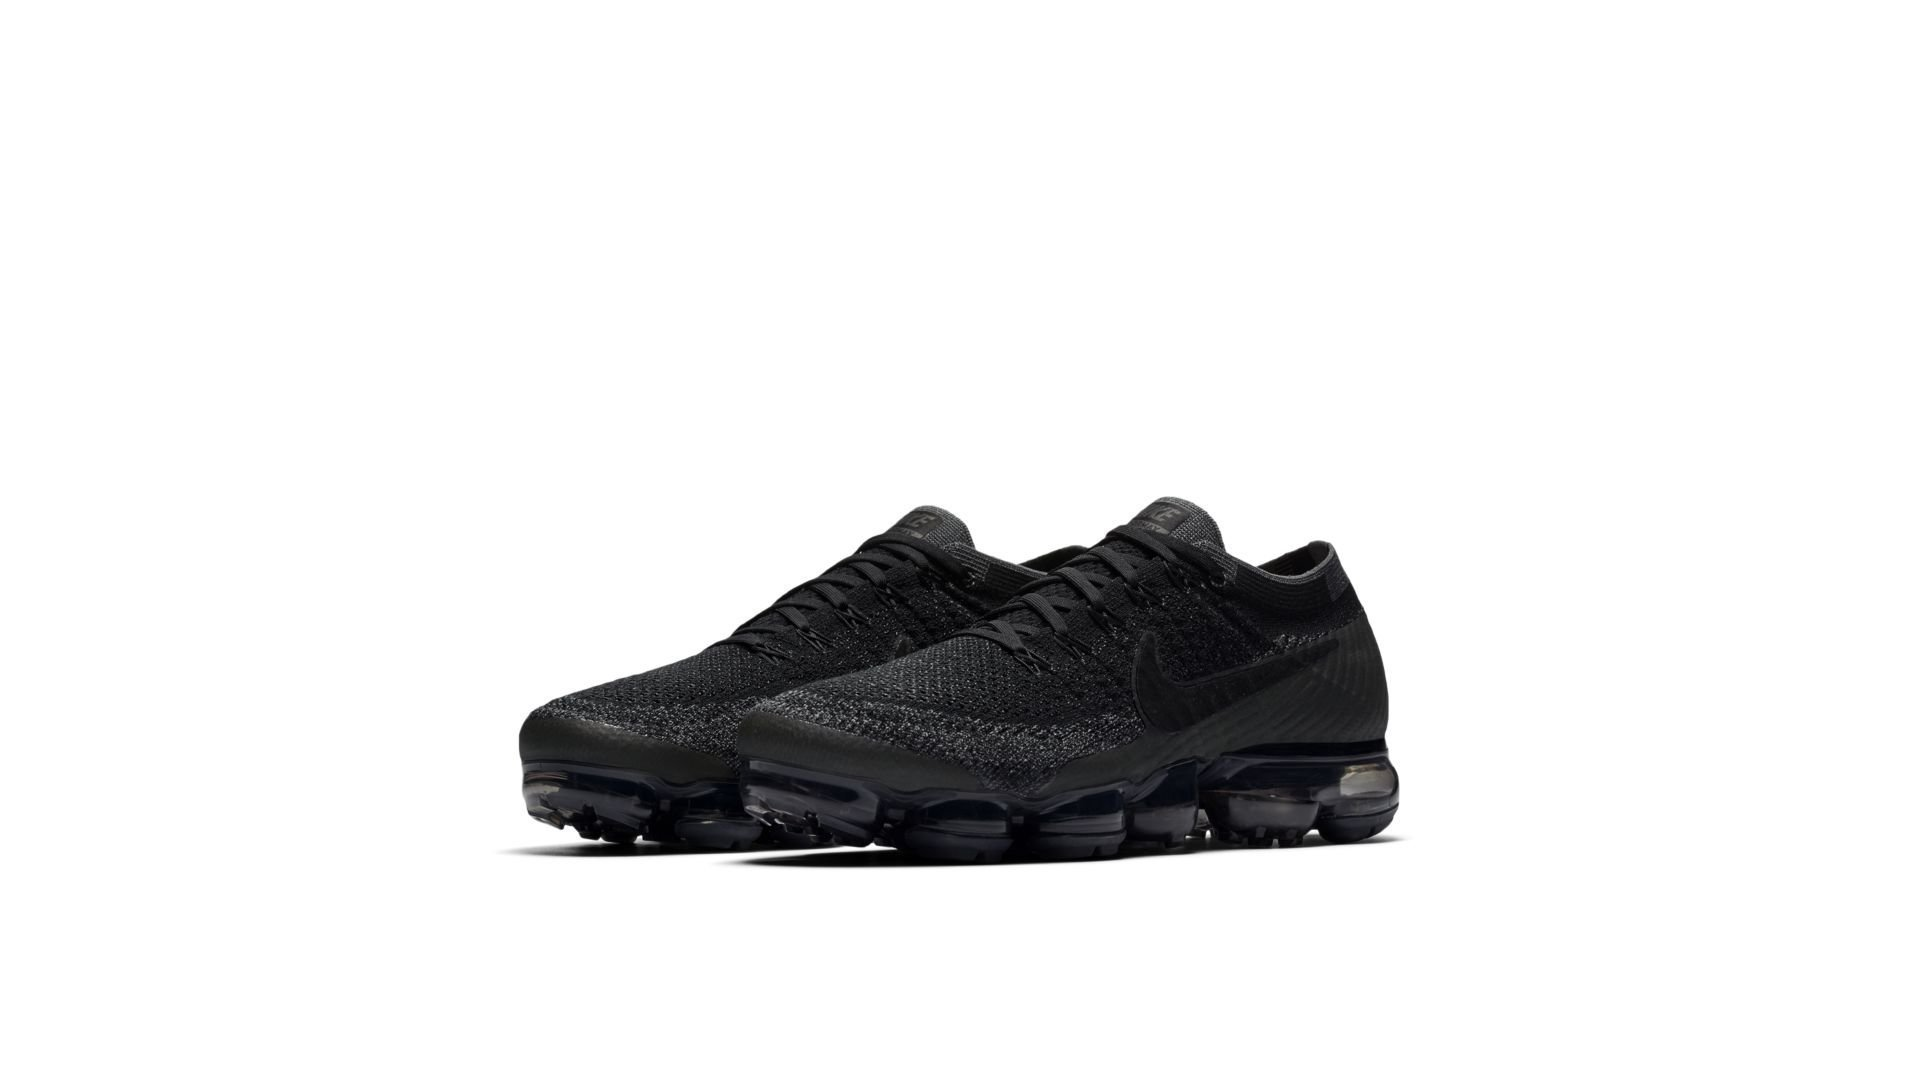 Nike Air Vapormax Triple Black (849558-007)